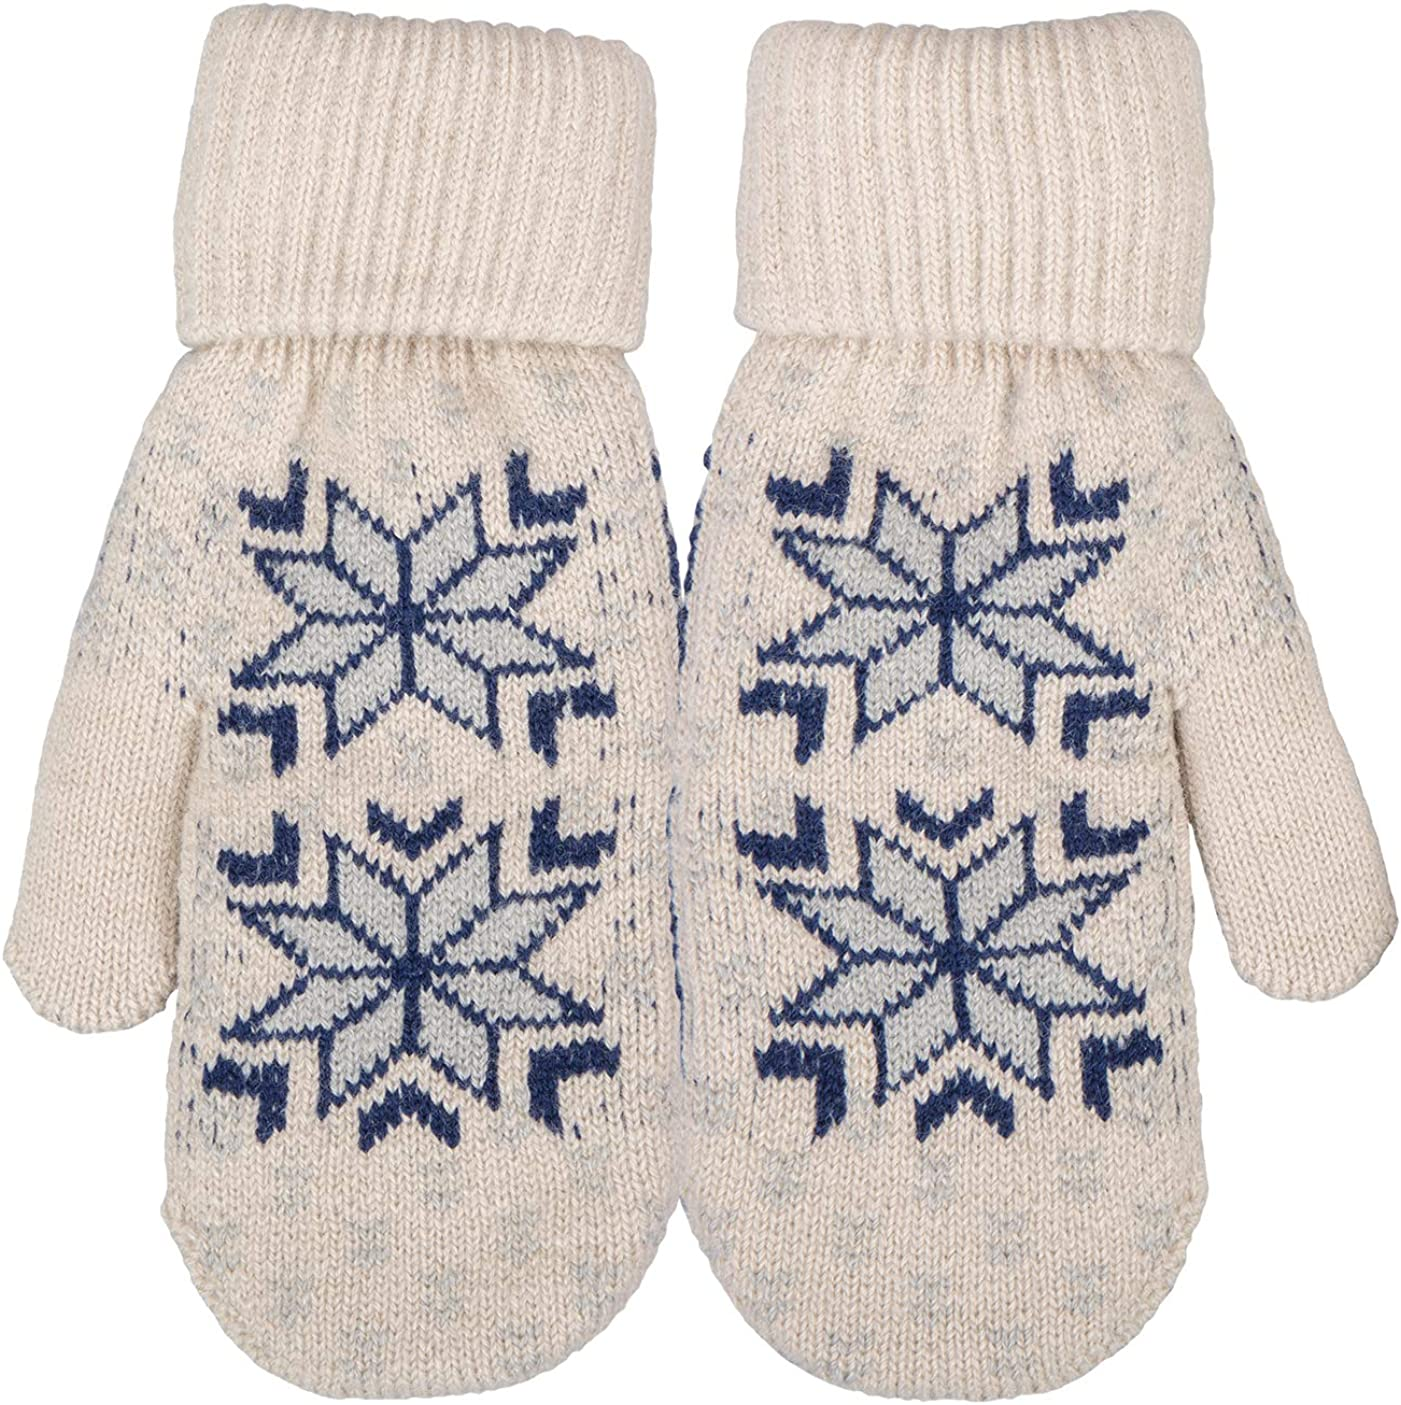 Broner Ladies Double Layer Knit Mittens with Nordic Design